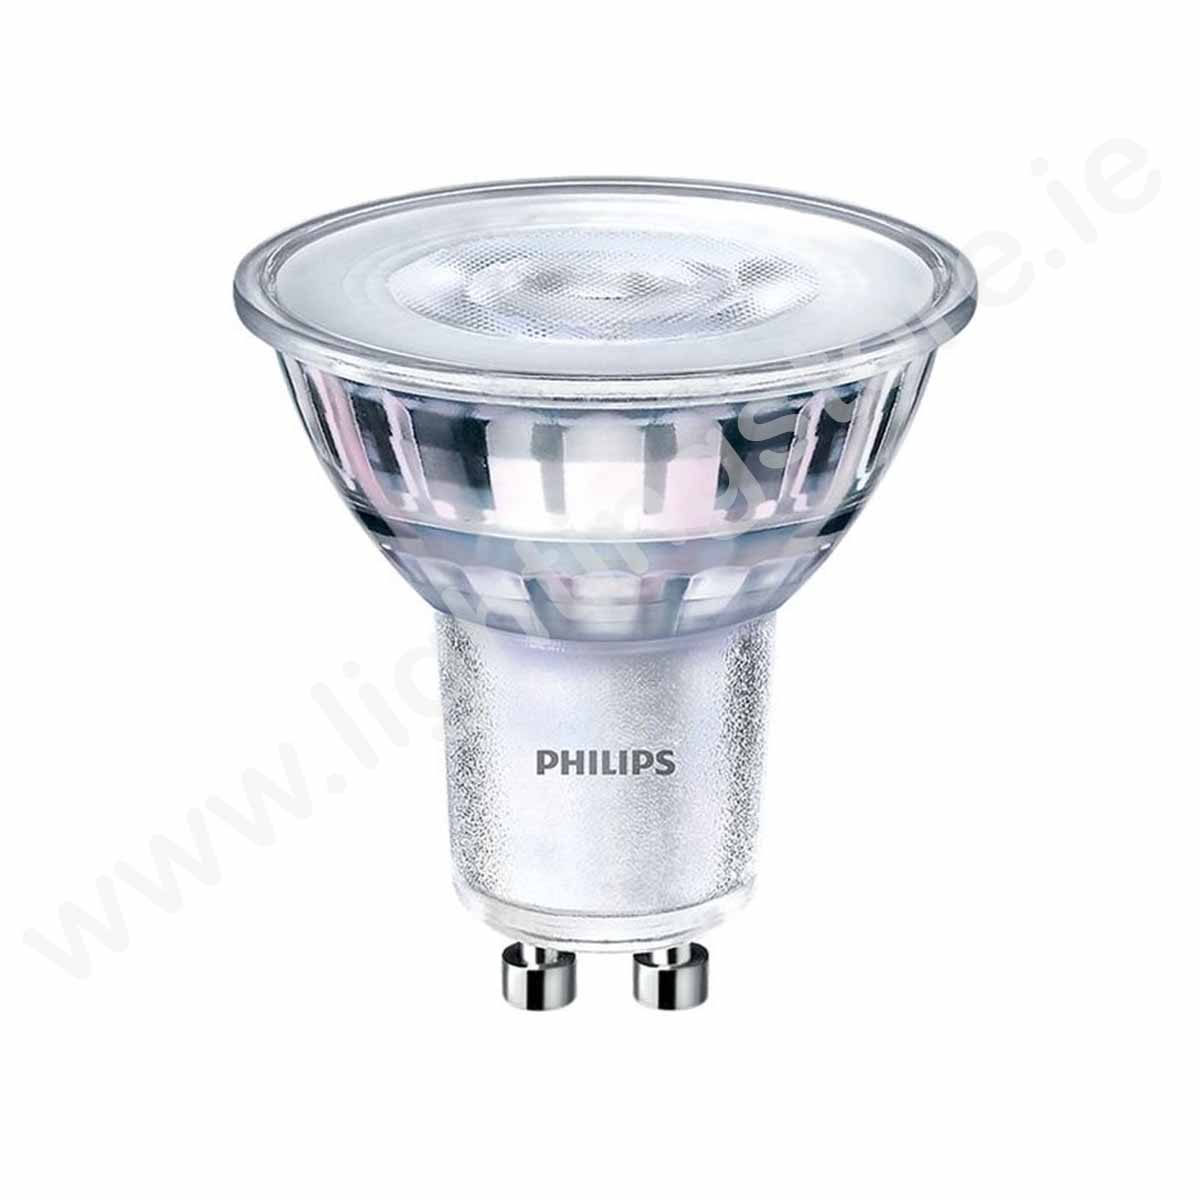 Philips GU10 Dimmable Warm White 4.3W